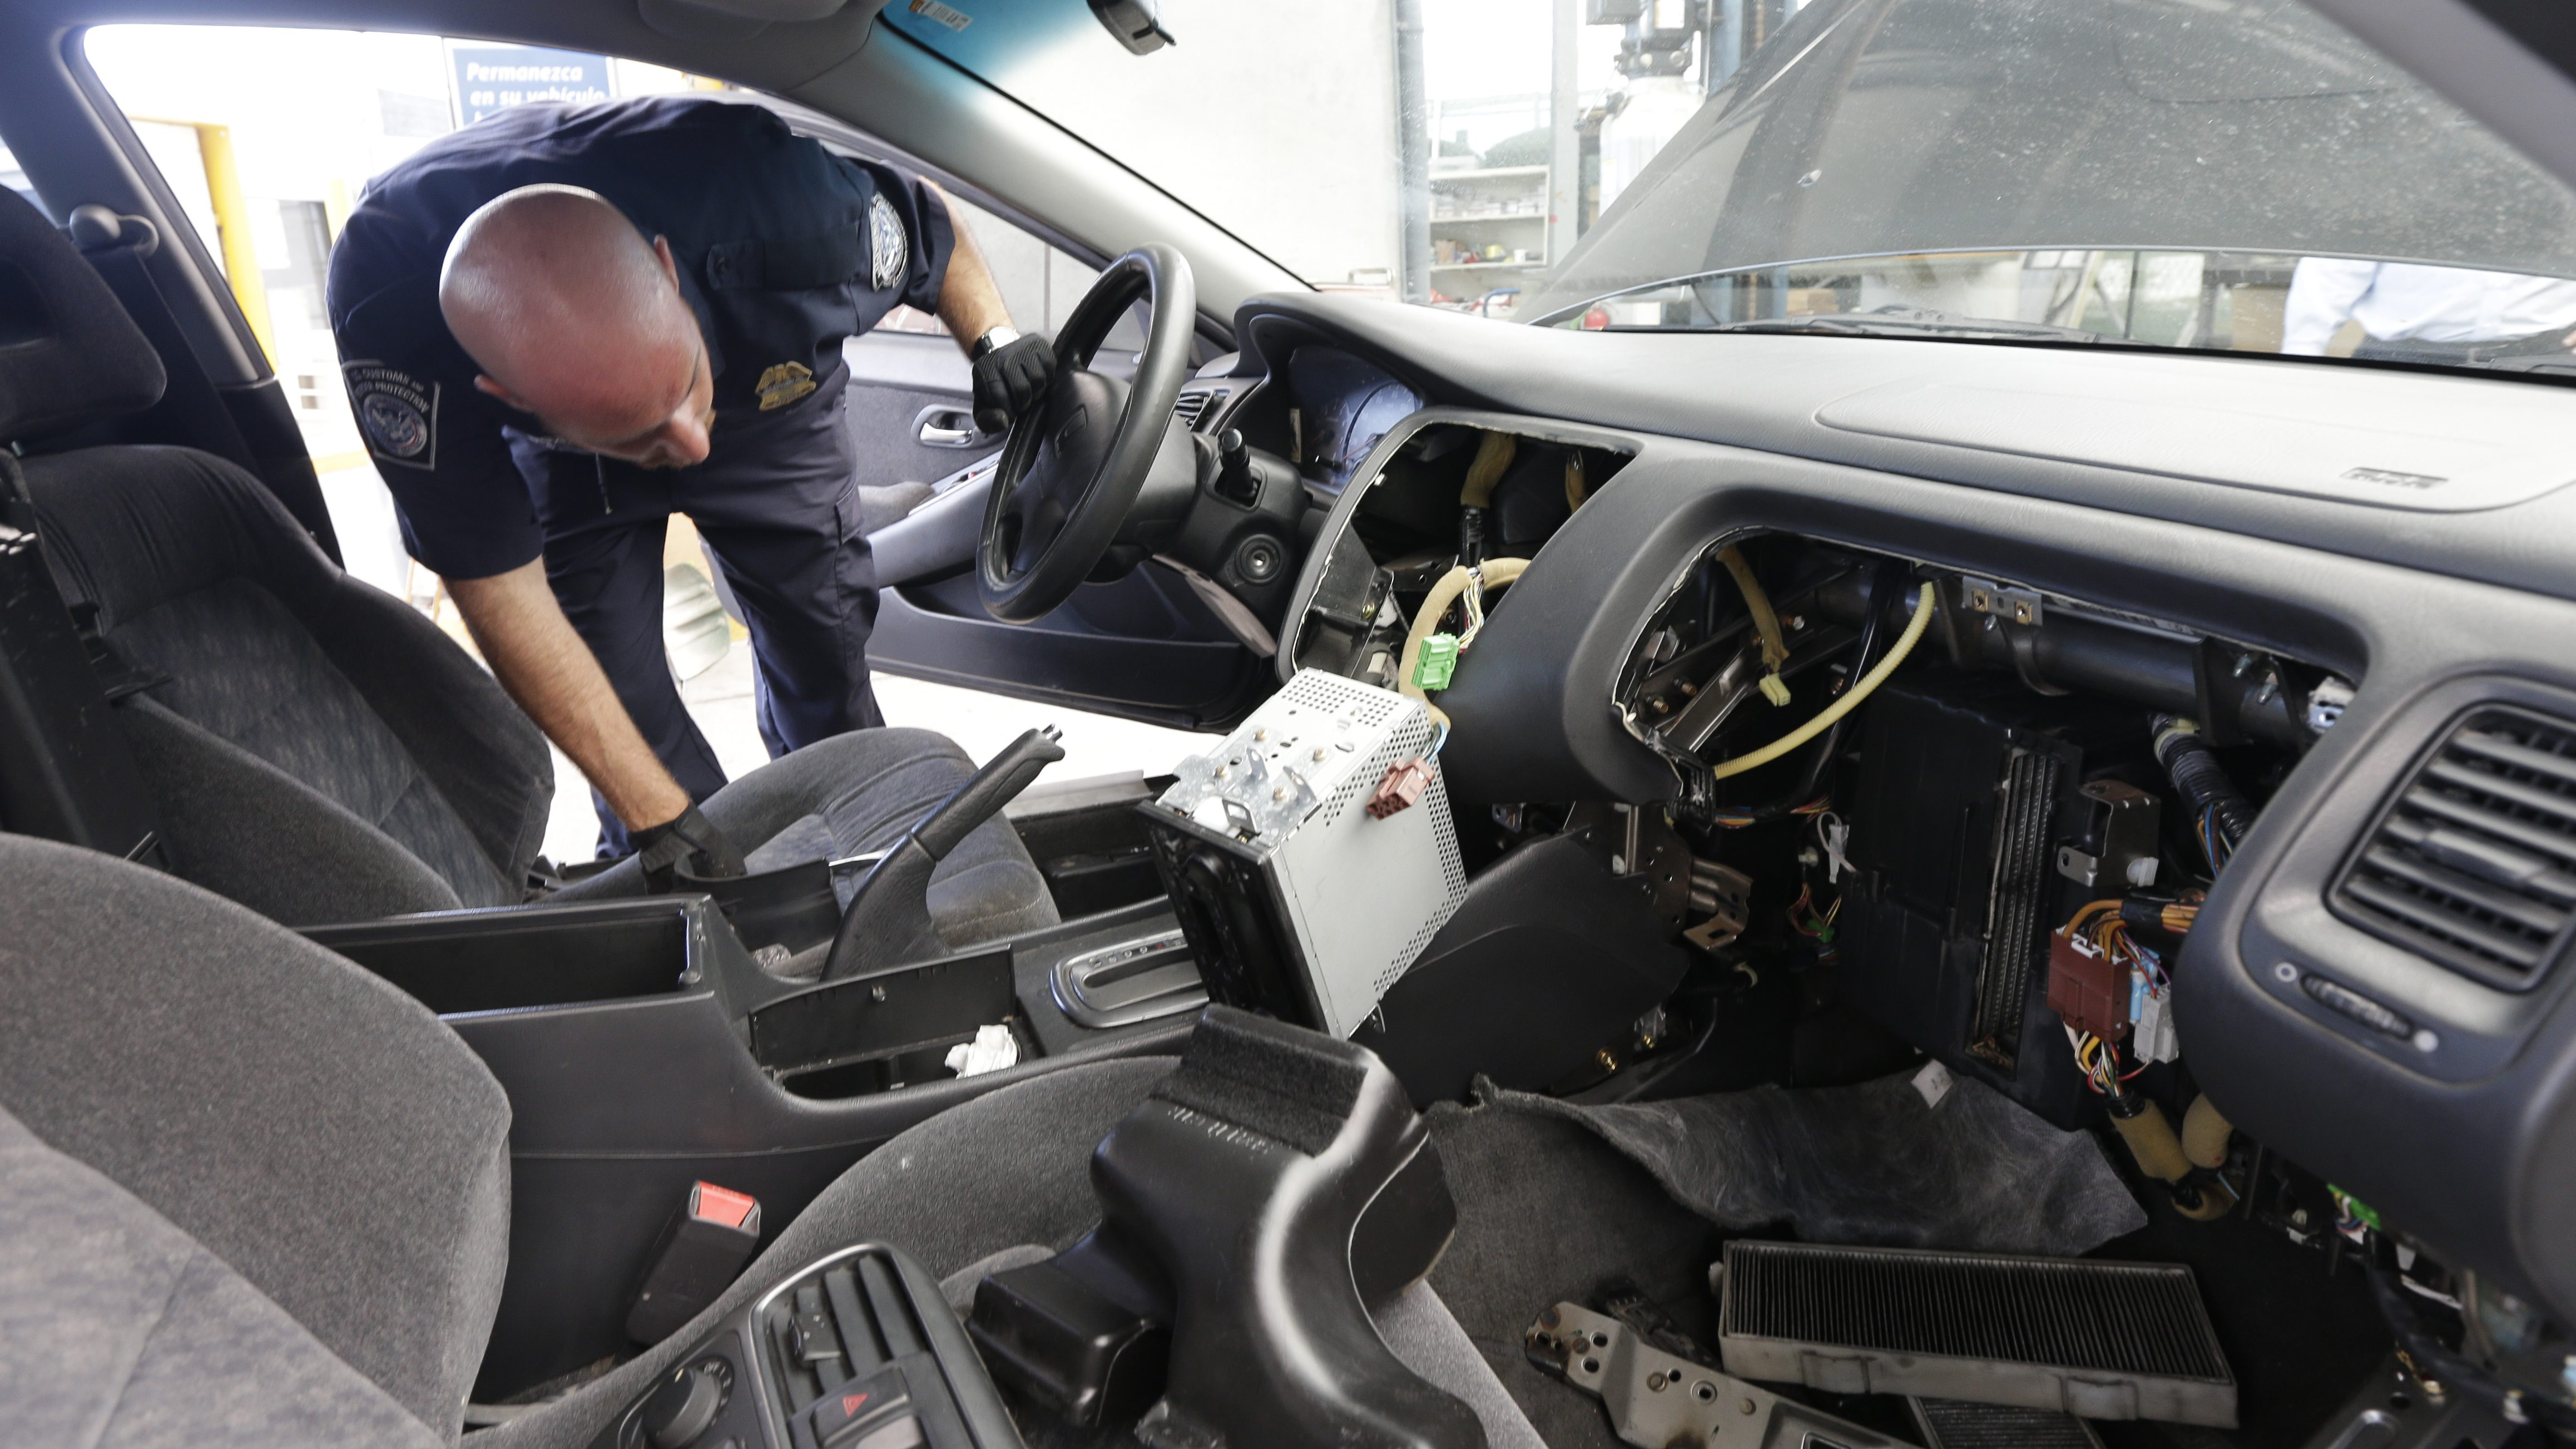 A Customs and Border Protection officer looks in the dismembered dashboard of a Honda Accord